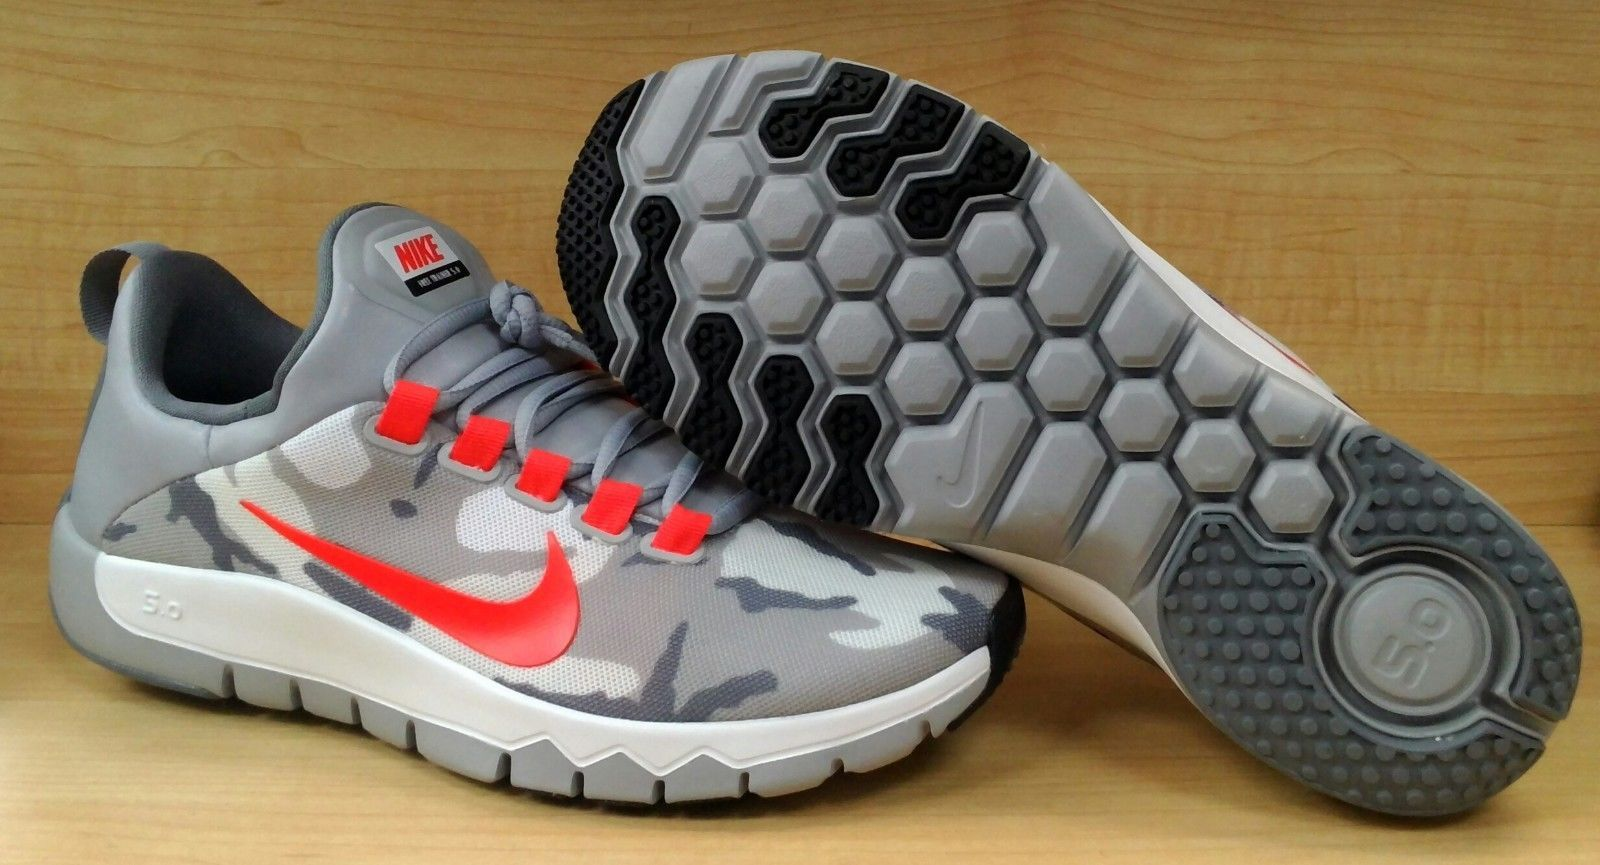 nike free trainer 5.0 men's camo pants